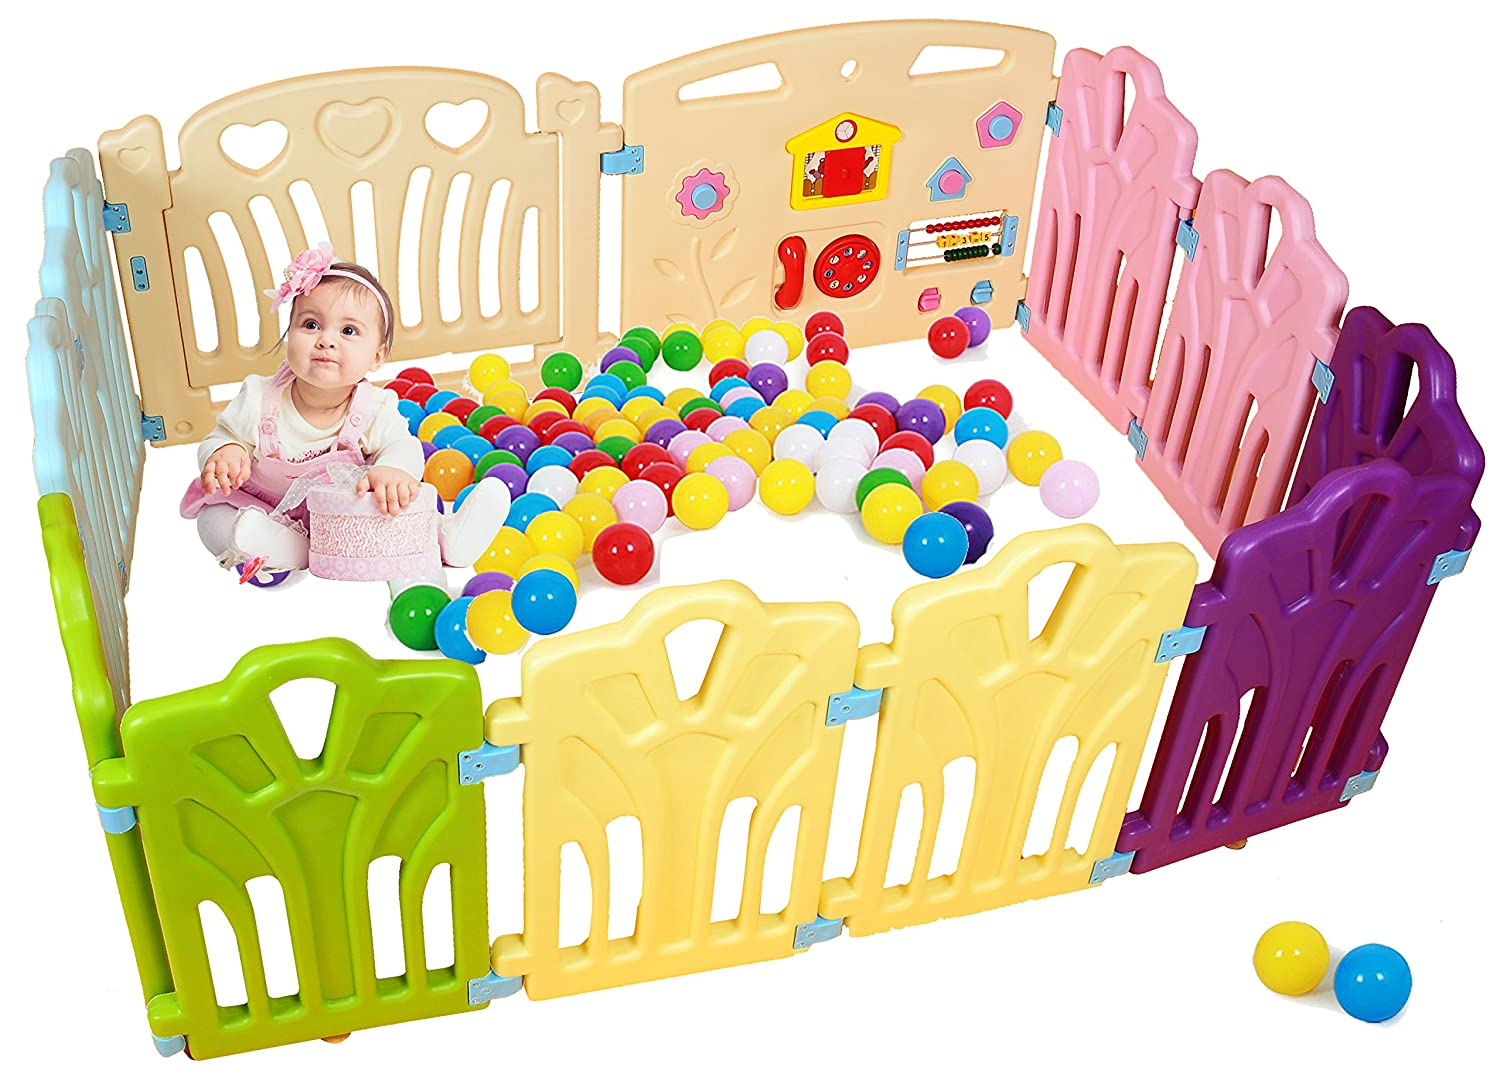 Baby Playpen Kids Activity Centre Safety Play Yard Home Indoor Outdoor New Pen (Multicolour, Classic Set 12 Panel) PENSON & CO.